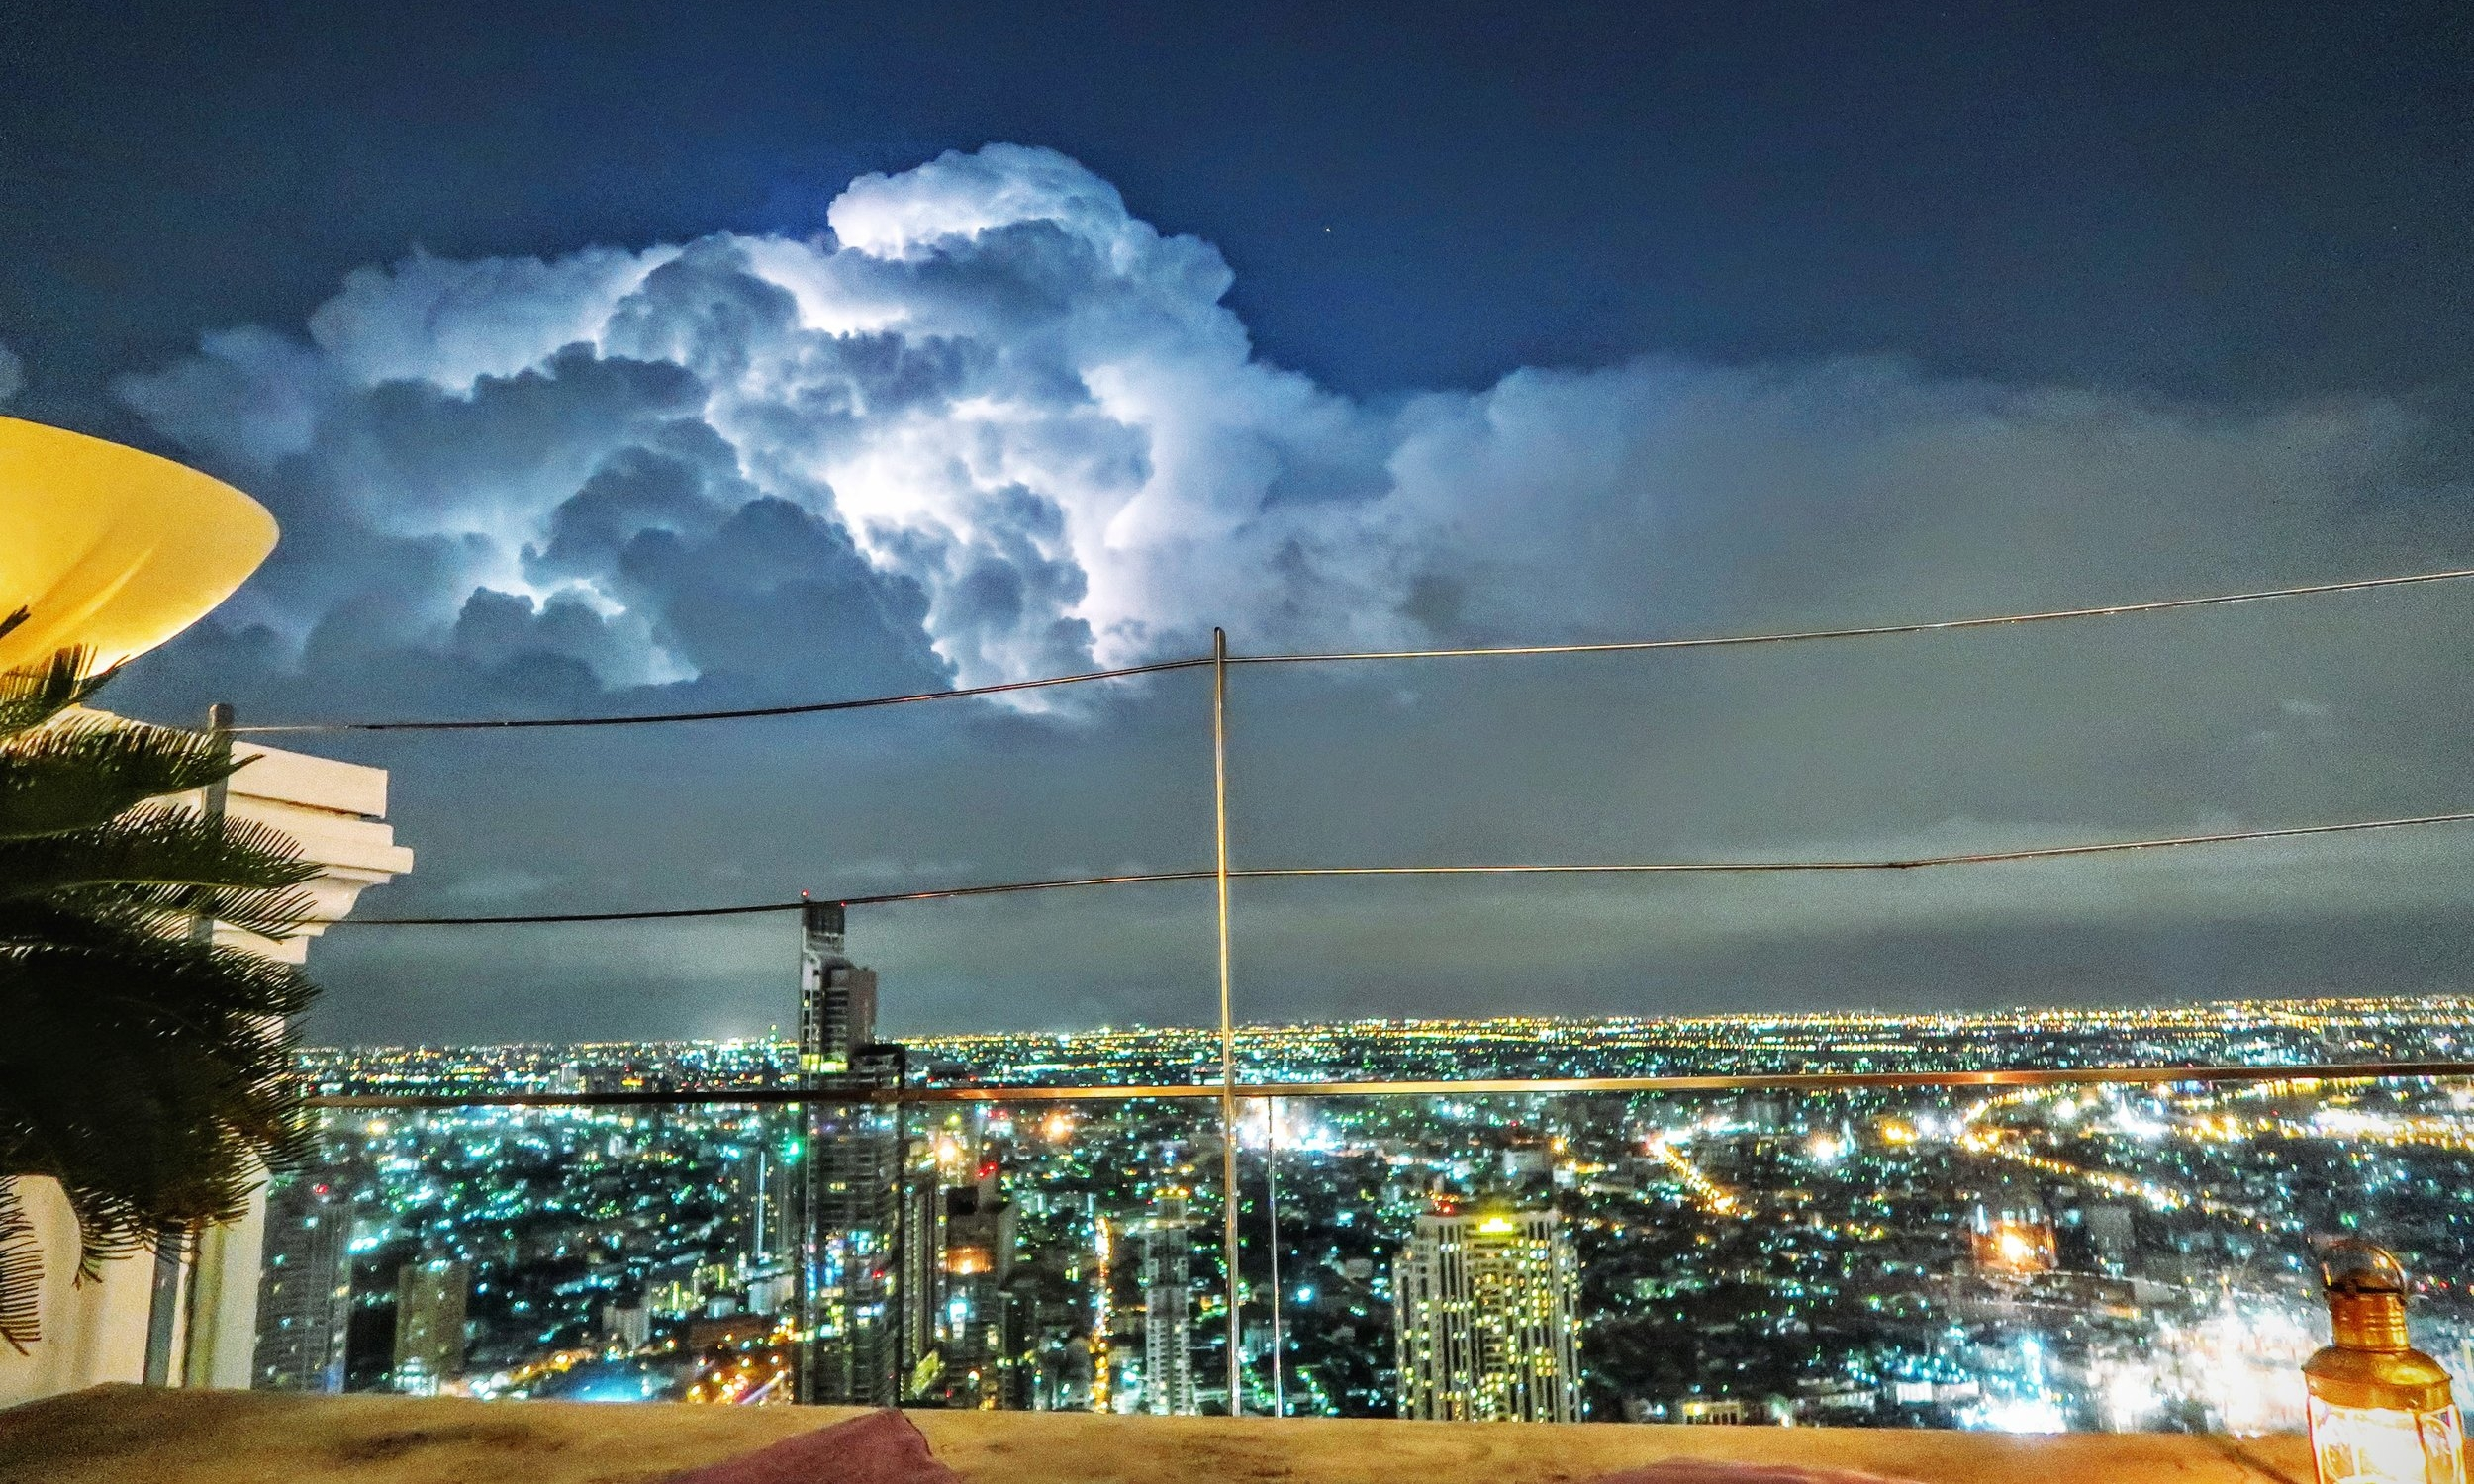 Bangkok - During our trip to Bangkok we visited the Lebua Skybar, the same one featured in the Hangover 2. We didn't expect that a huge lightning storm would be playing out in the Sky. An absolutely incredible sight!